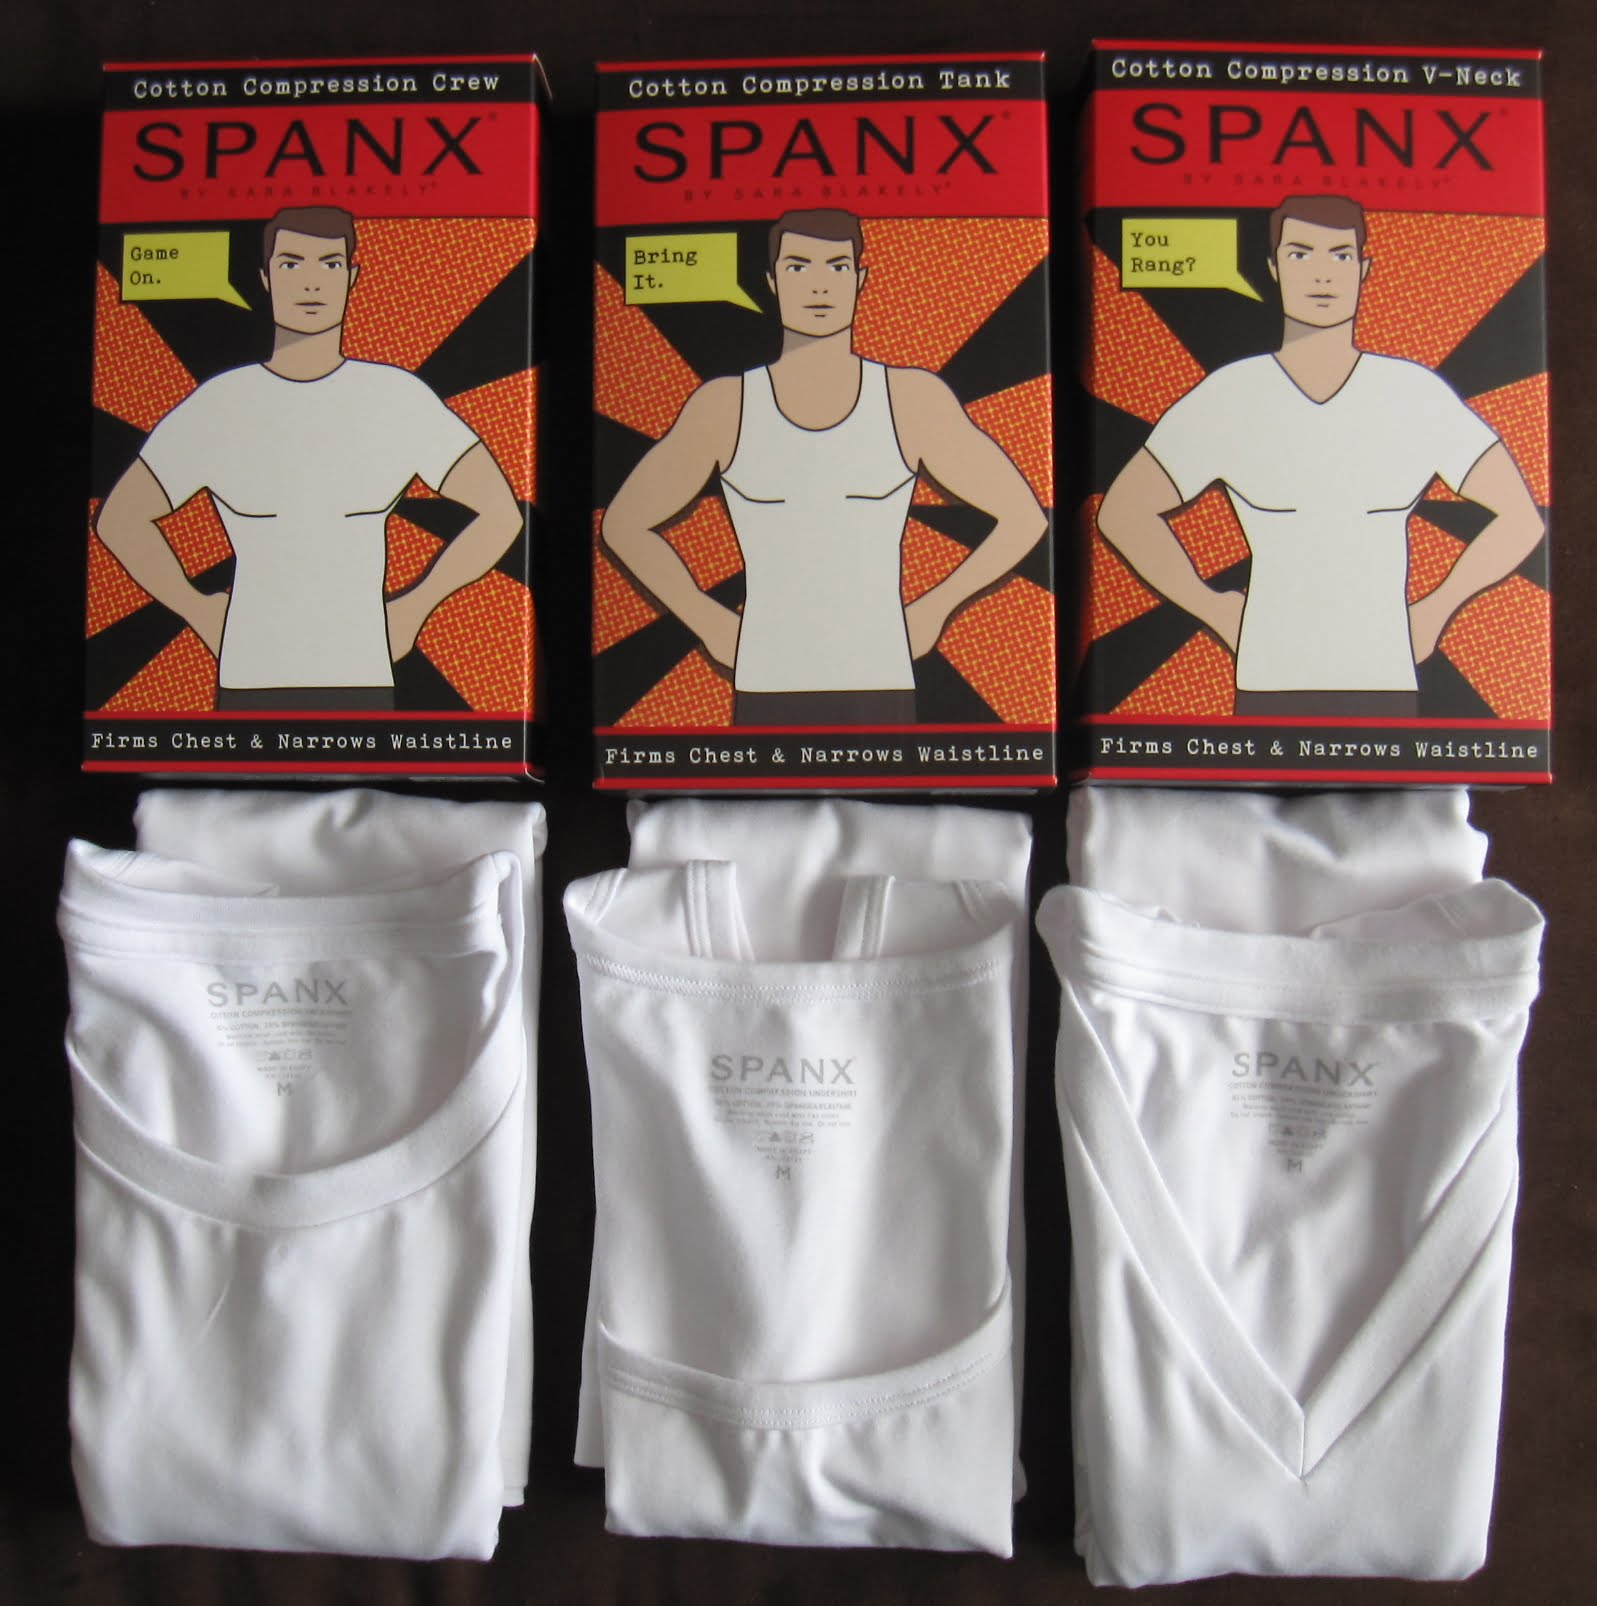 Buy Spanx Discount Coupon Printables